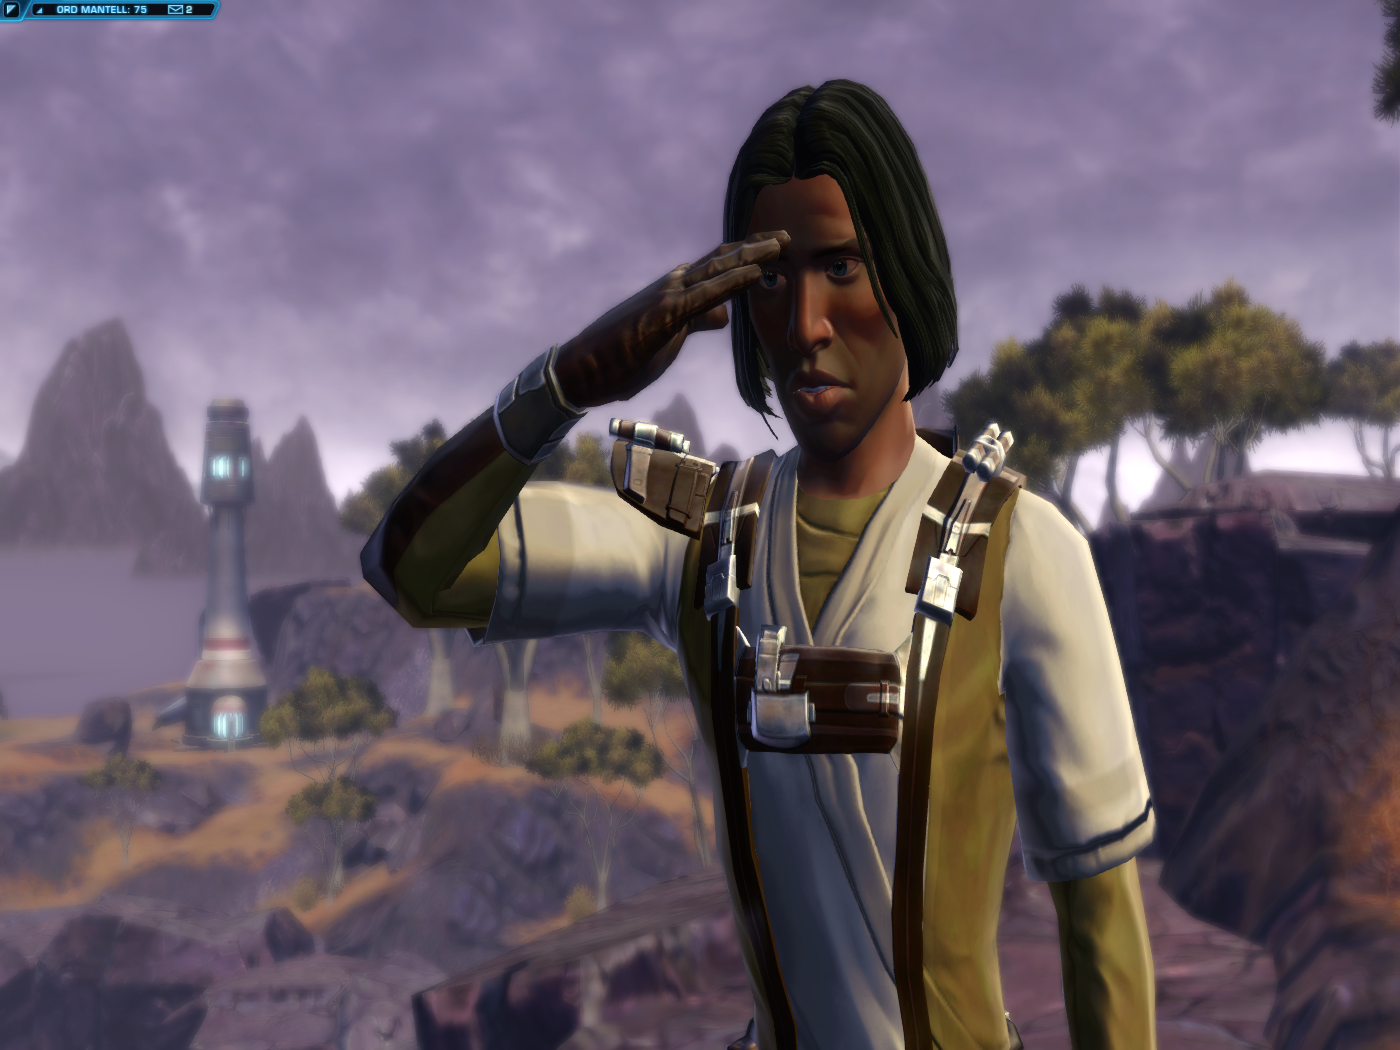 swtor 12-04-2020 11-17-16 PM-892